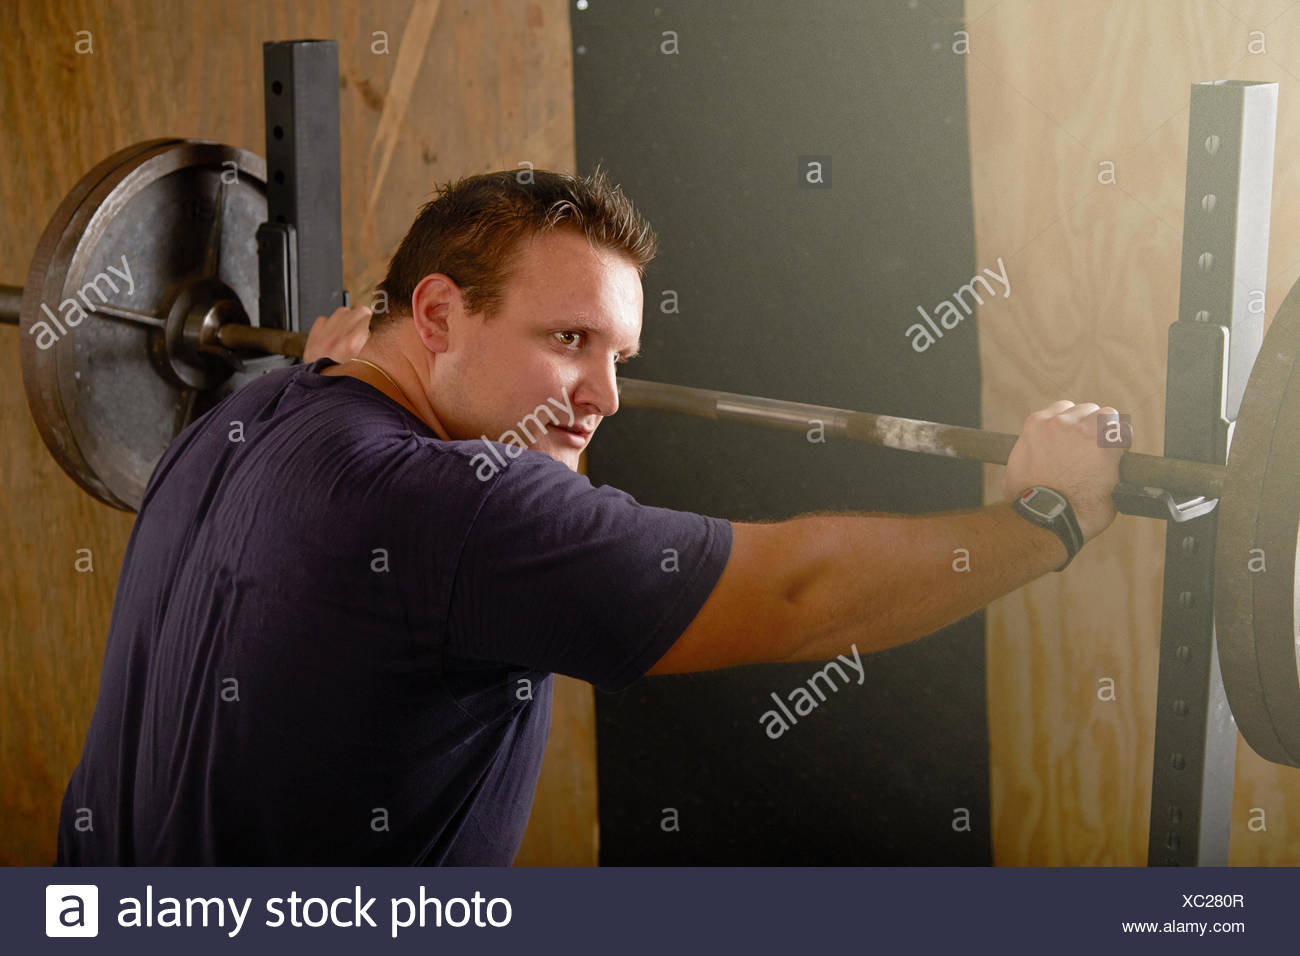 Young male weightlifter preparing to lift barbell in gym - Stock Image